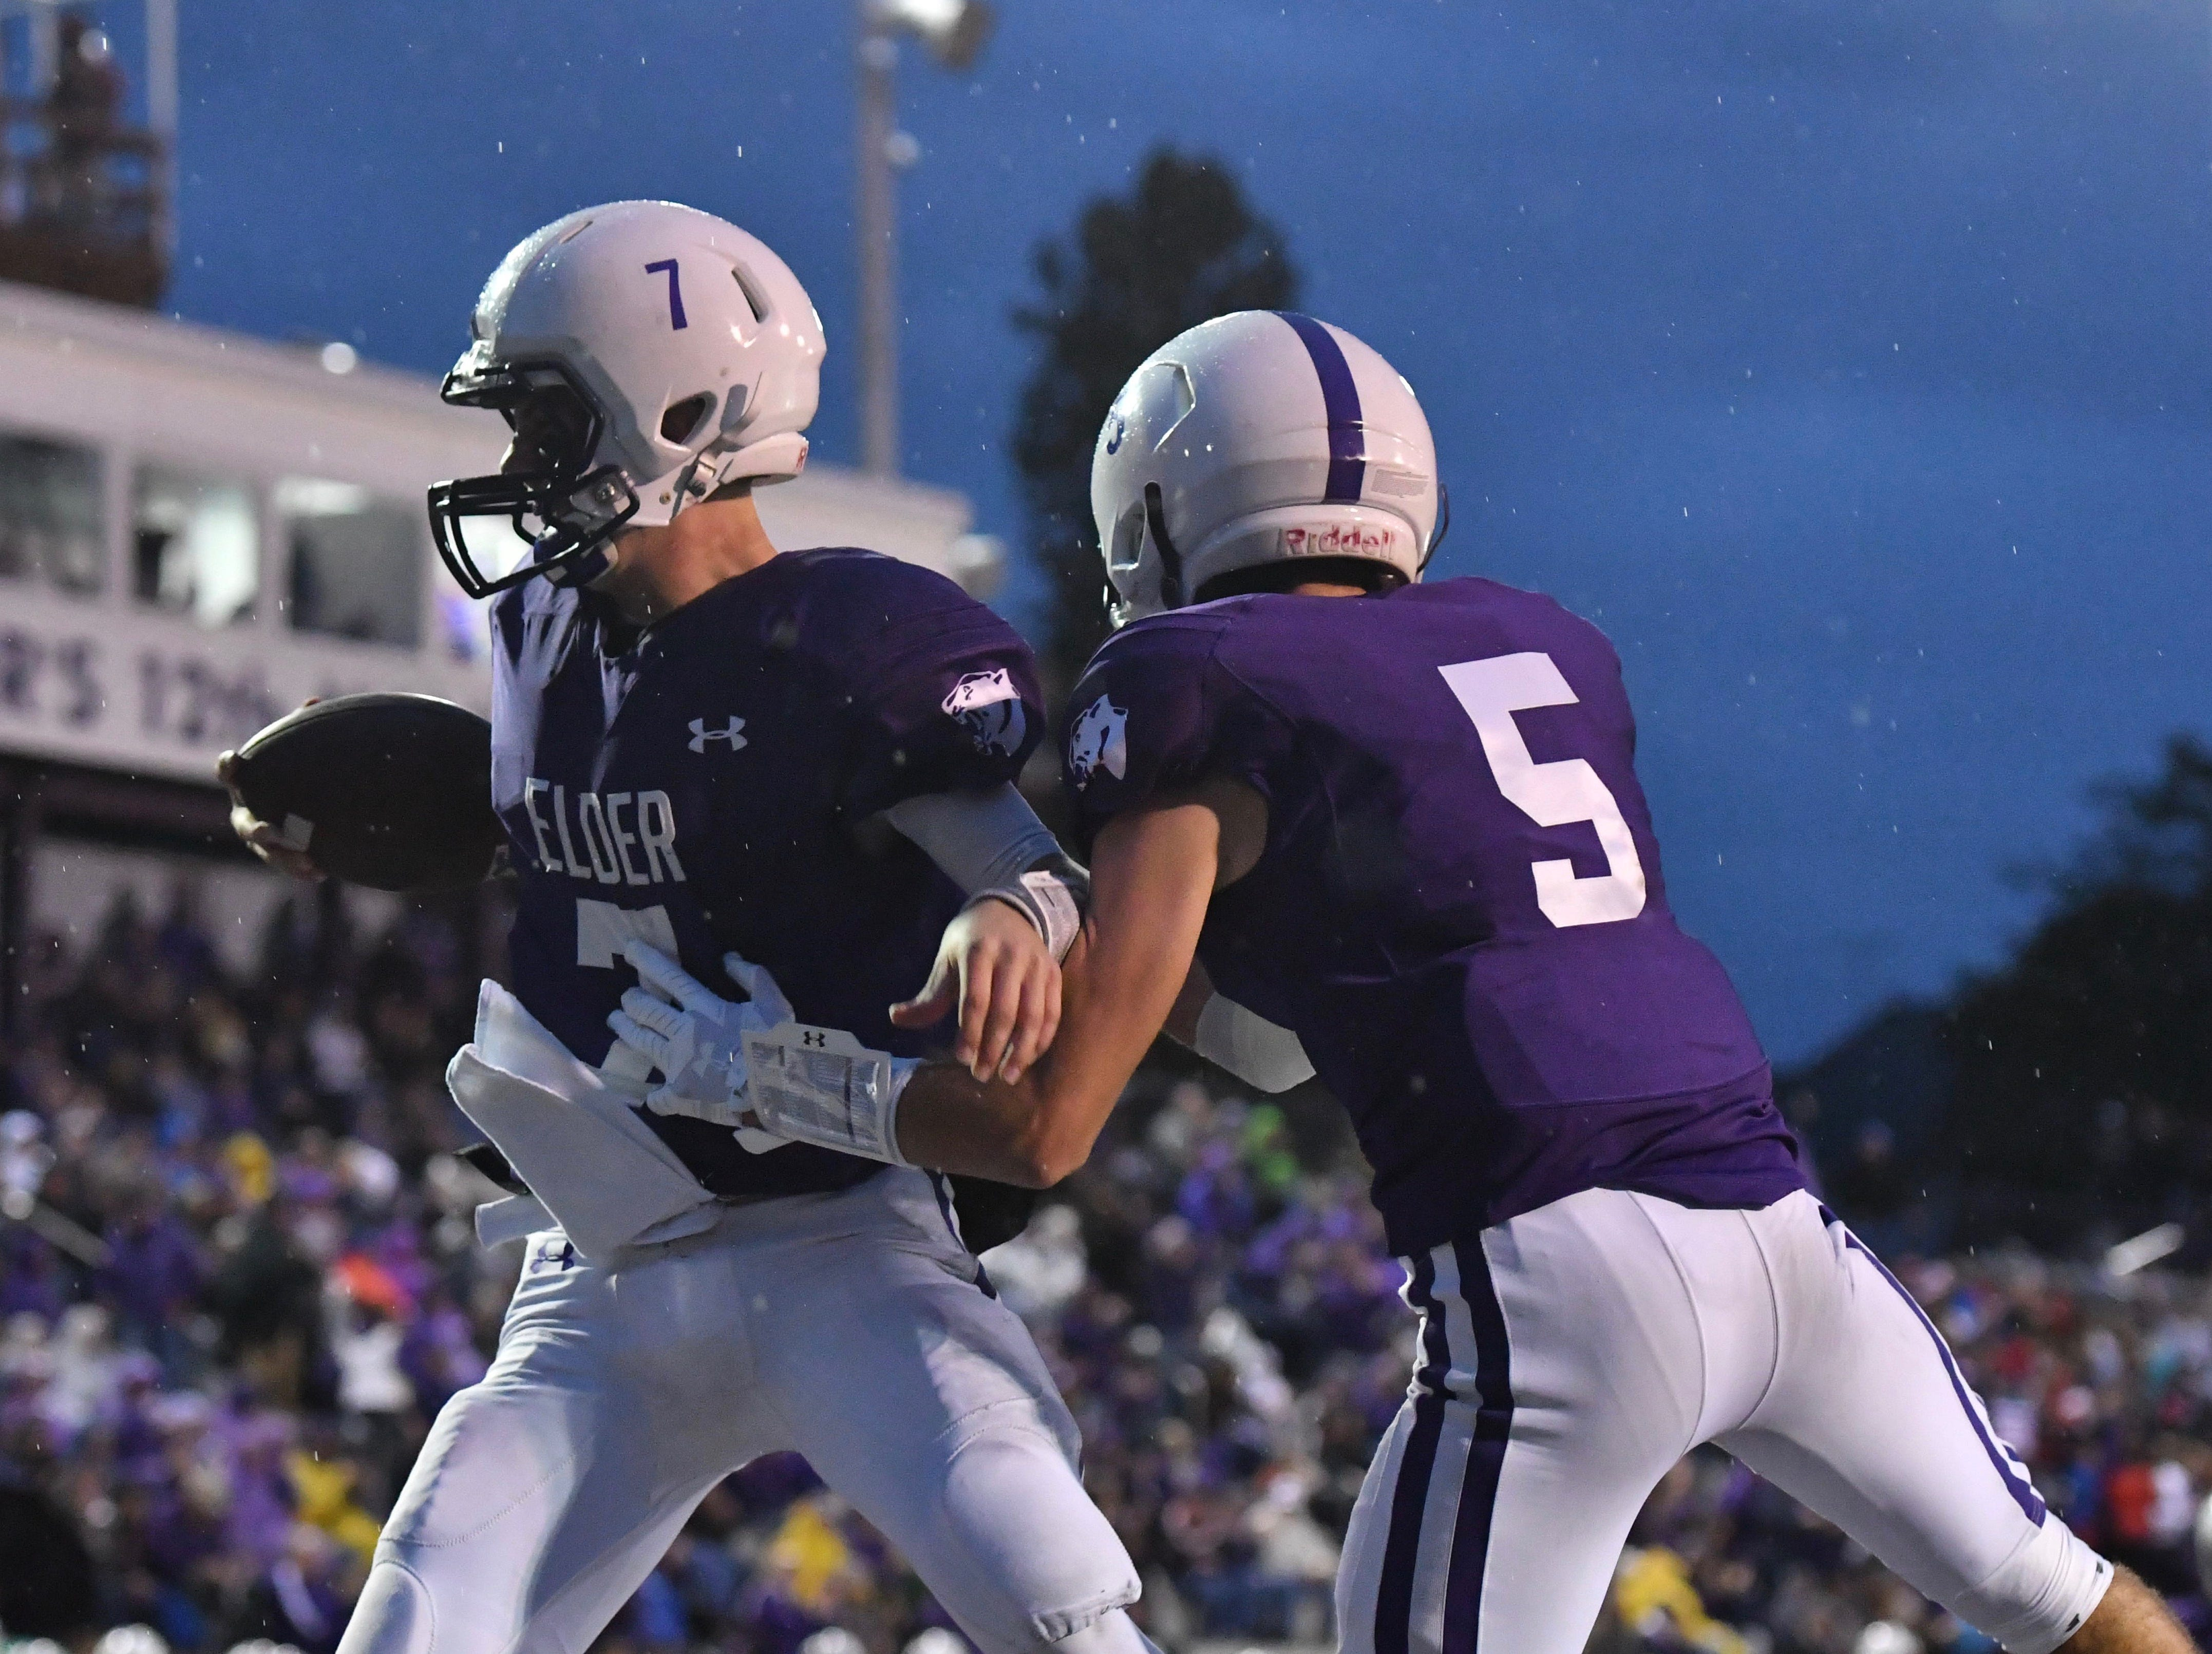 Matthew Luebbe and Sean O'Conner celebrate an Elder Panther touchdown Friday, Oct. 12, 2018 at High School